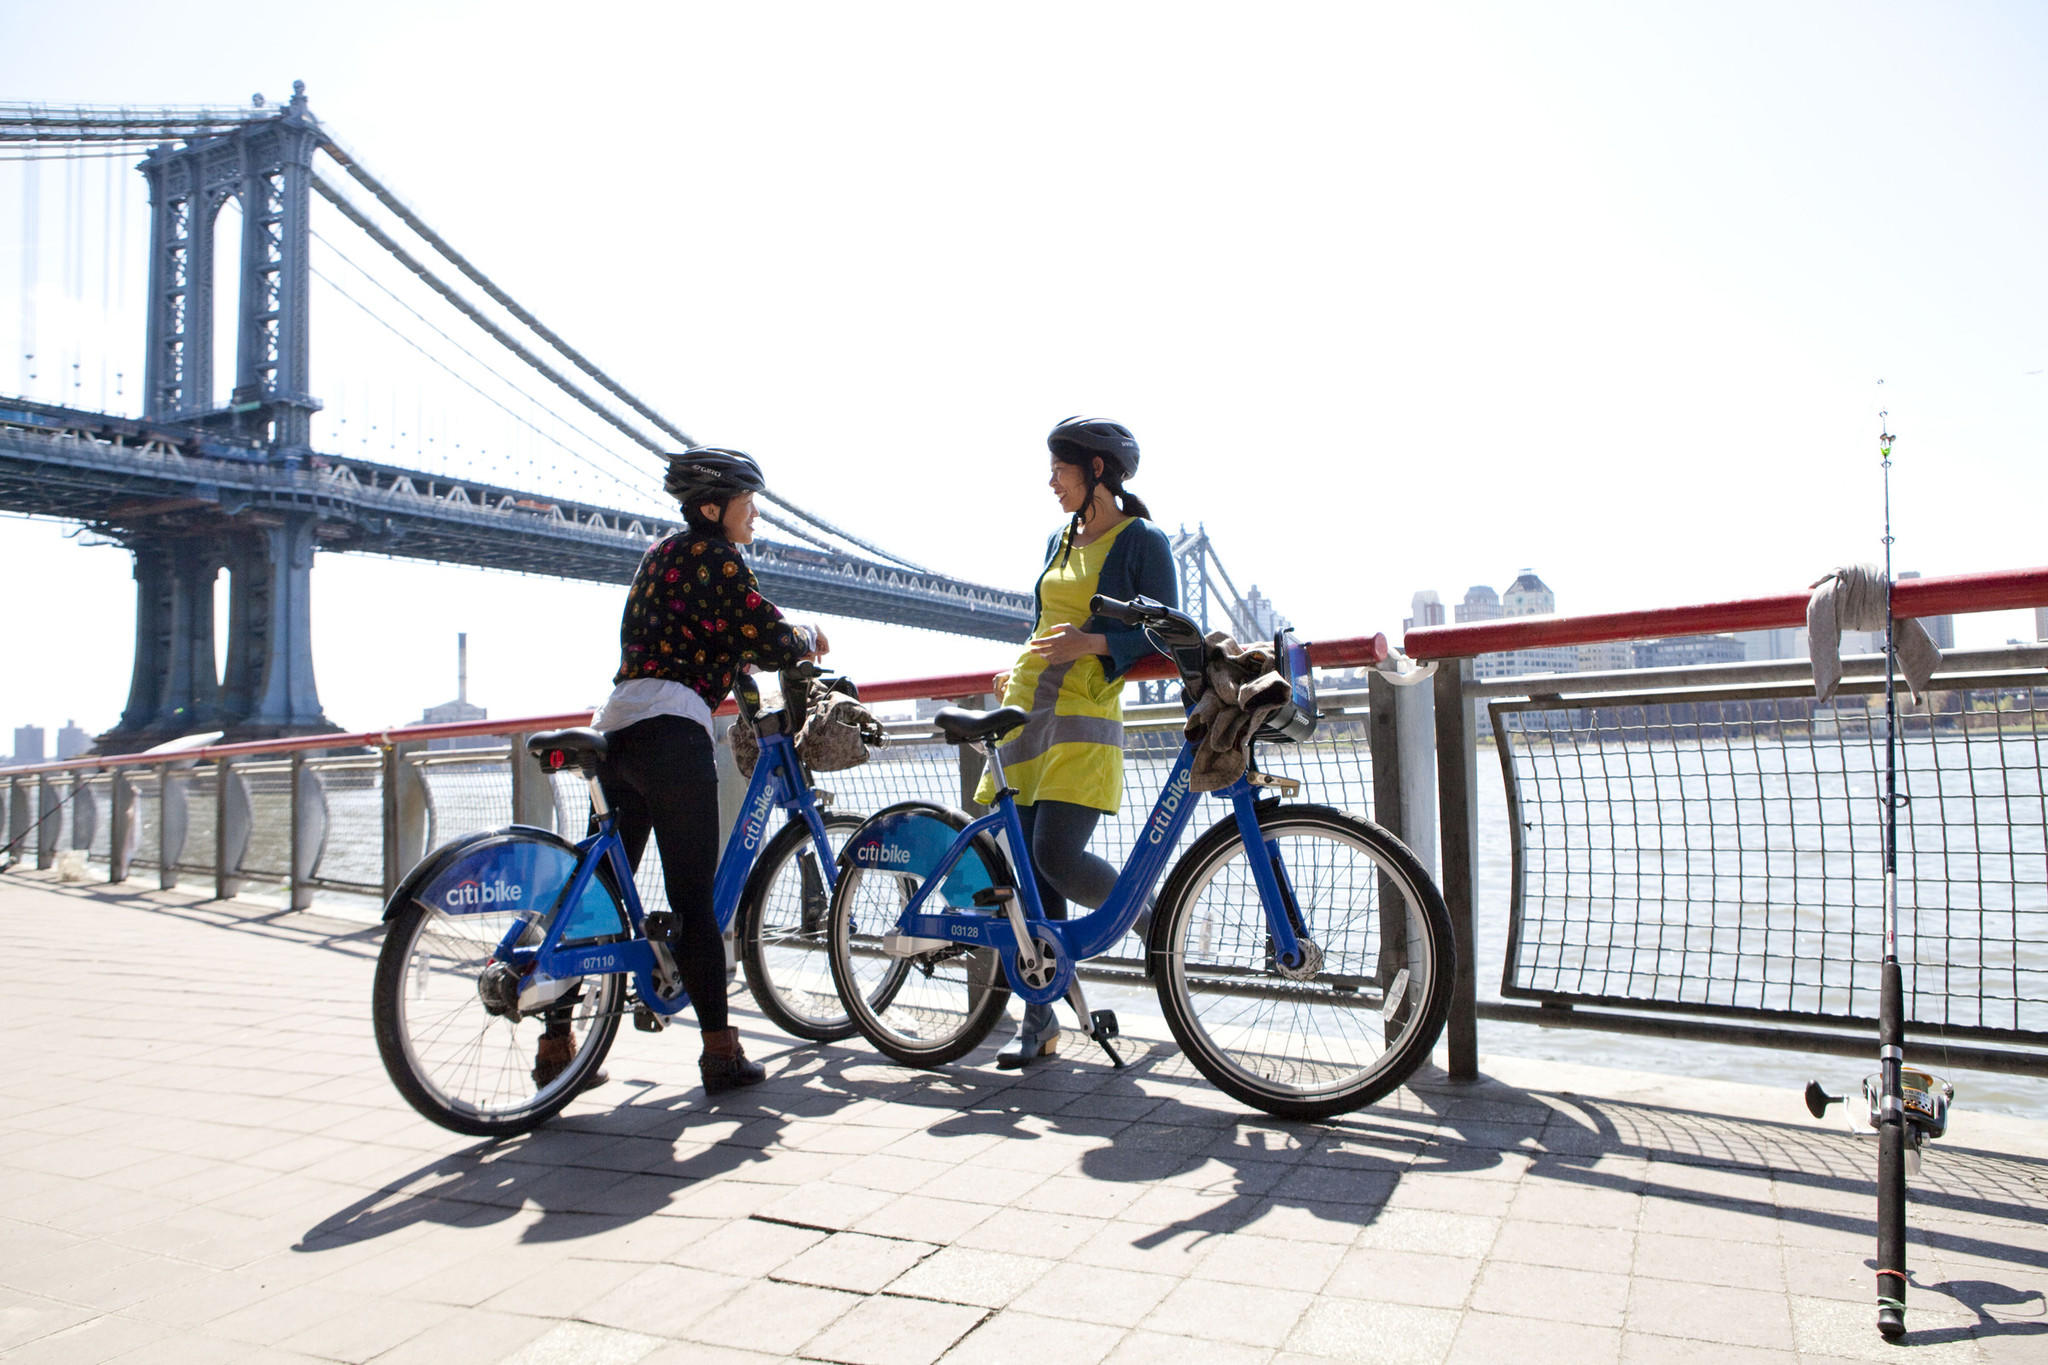 Wishing for your own set of wheels in the city? City Bike, NYC's fabulous bike share program, offers bicycle rentals at hundreds of touch-screen kiosk stations around town, 24/7. And with 700 miles of bike lanes citywide, including parks, greenways and on-street facilities, you can peddle anywhere - and everywhere. Citibikenyc.com